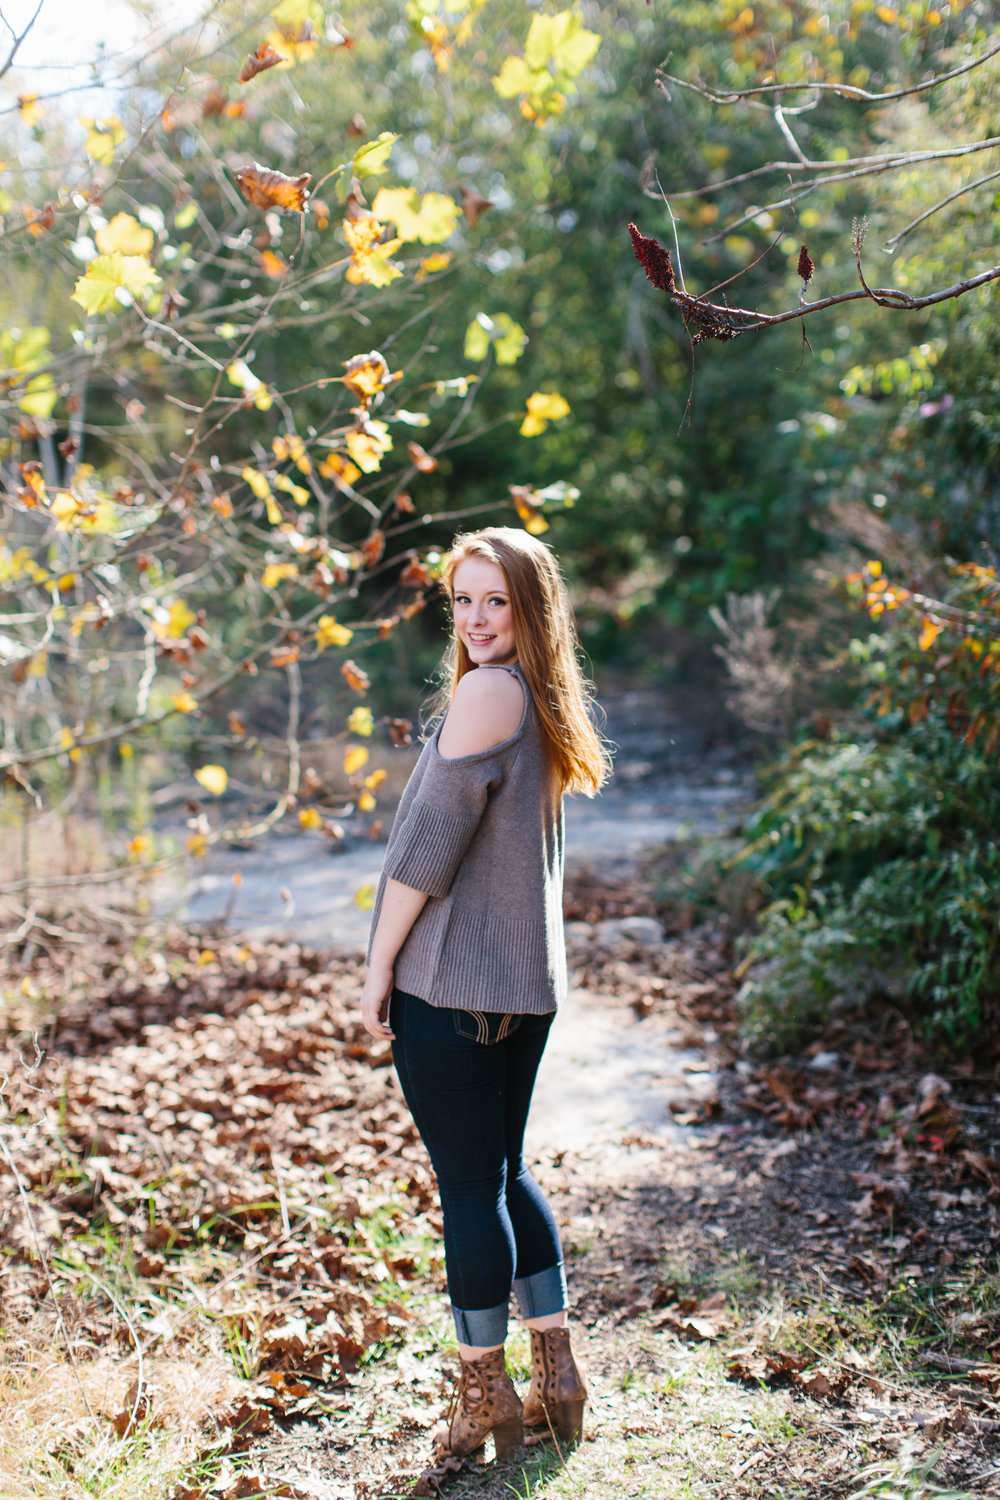 Heather_Senior_Photos_Abigail_Malone_Photography_Knoxville-145.jpg